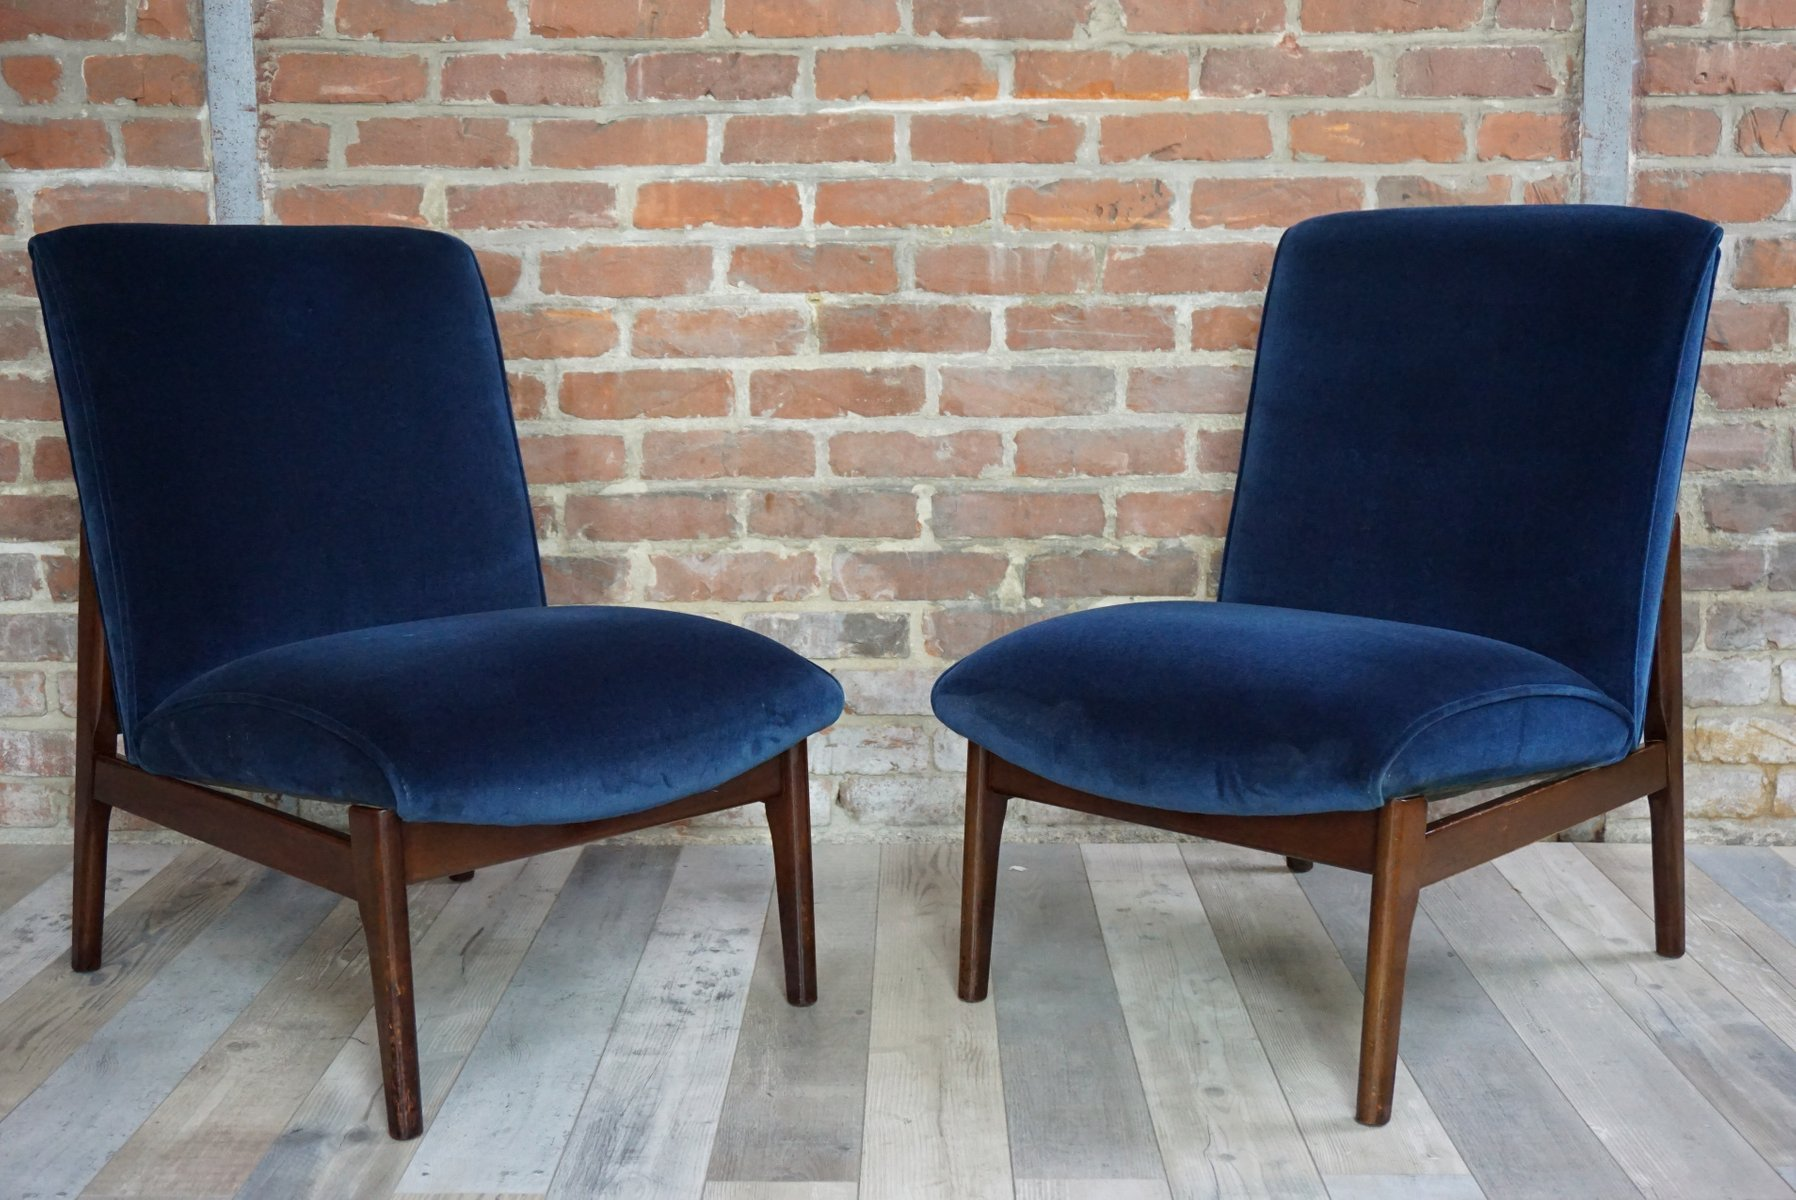 armchairs from parker knoll 1950s set of 2 for sale at. Black Bedroom Furniture Sets. Home Design Ideas